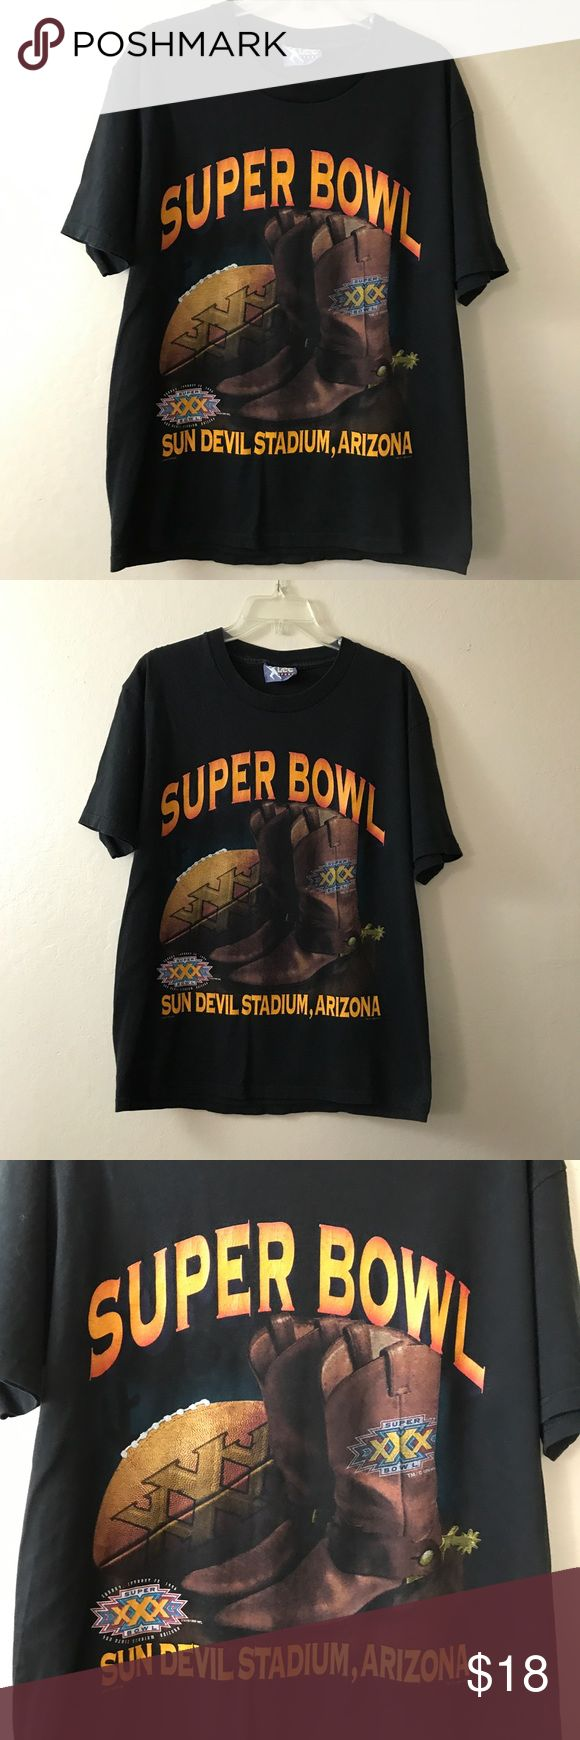 Vintage Lee Super Bowl XXX 1996 Arizona Football L Vintage Lee brand - Size Large - Black super bowl XXX 1996 Sun Devil Stadium, Arizona Graphic Tee Shirt - Excellent Condition - FAST SHIPPING! Lee Shirts Tees - Short Sleeve